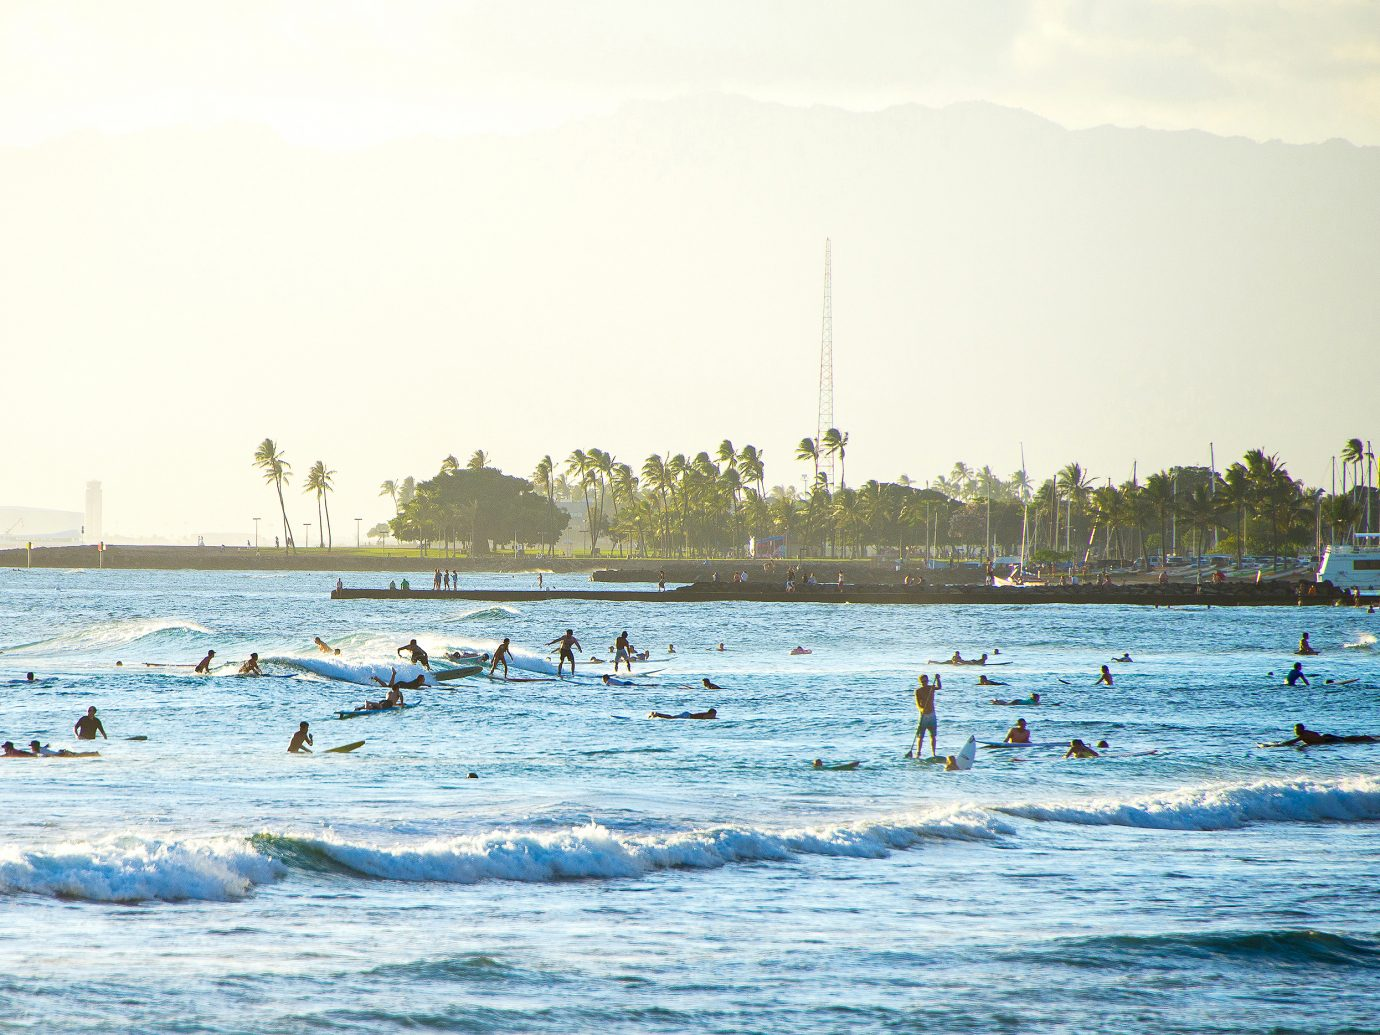 Many people surfing on surfboards and near Hawaii